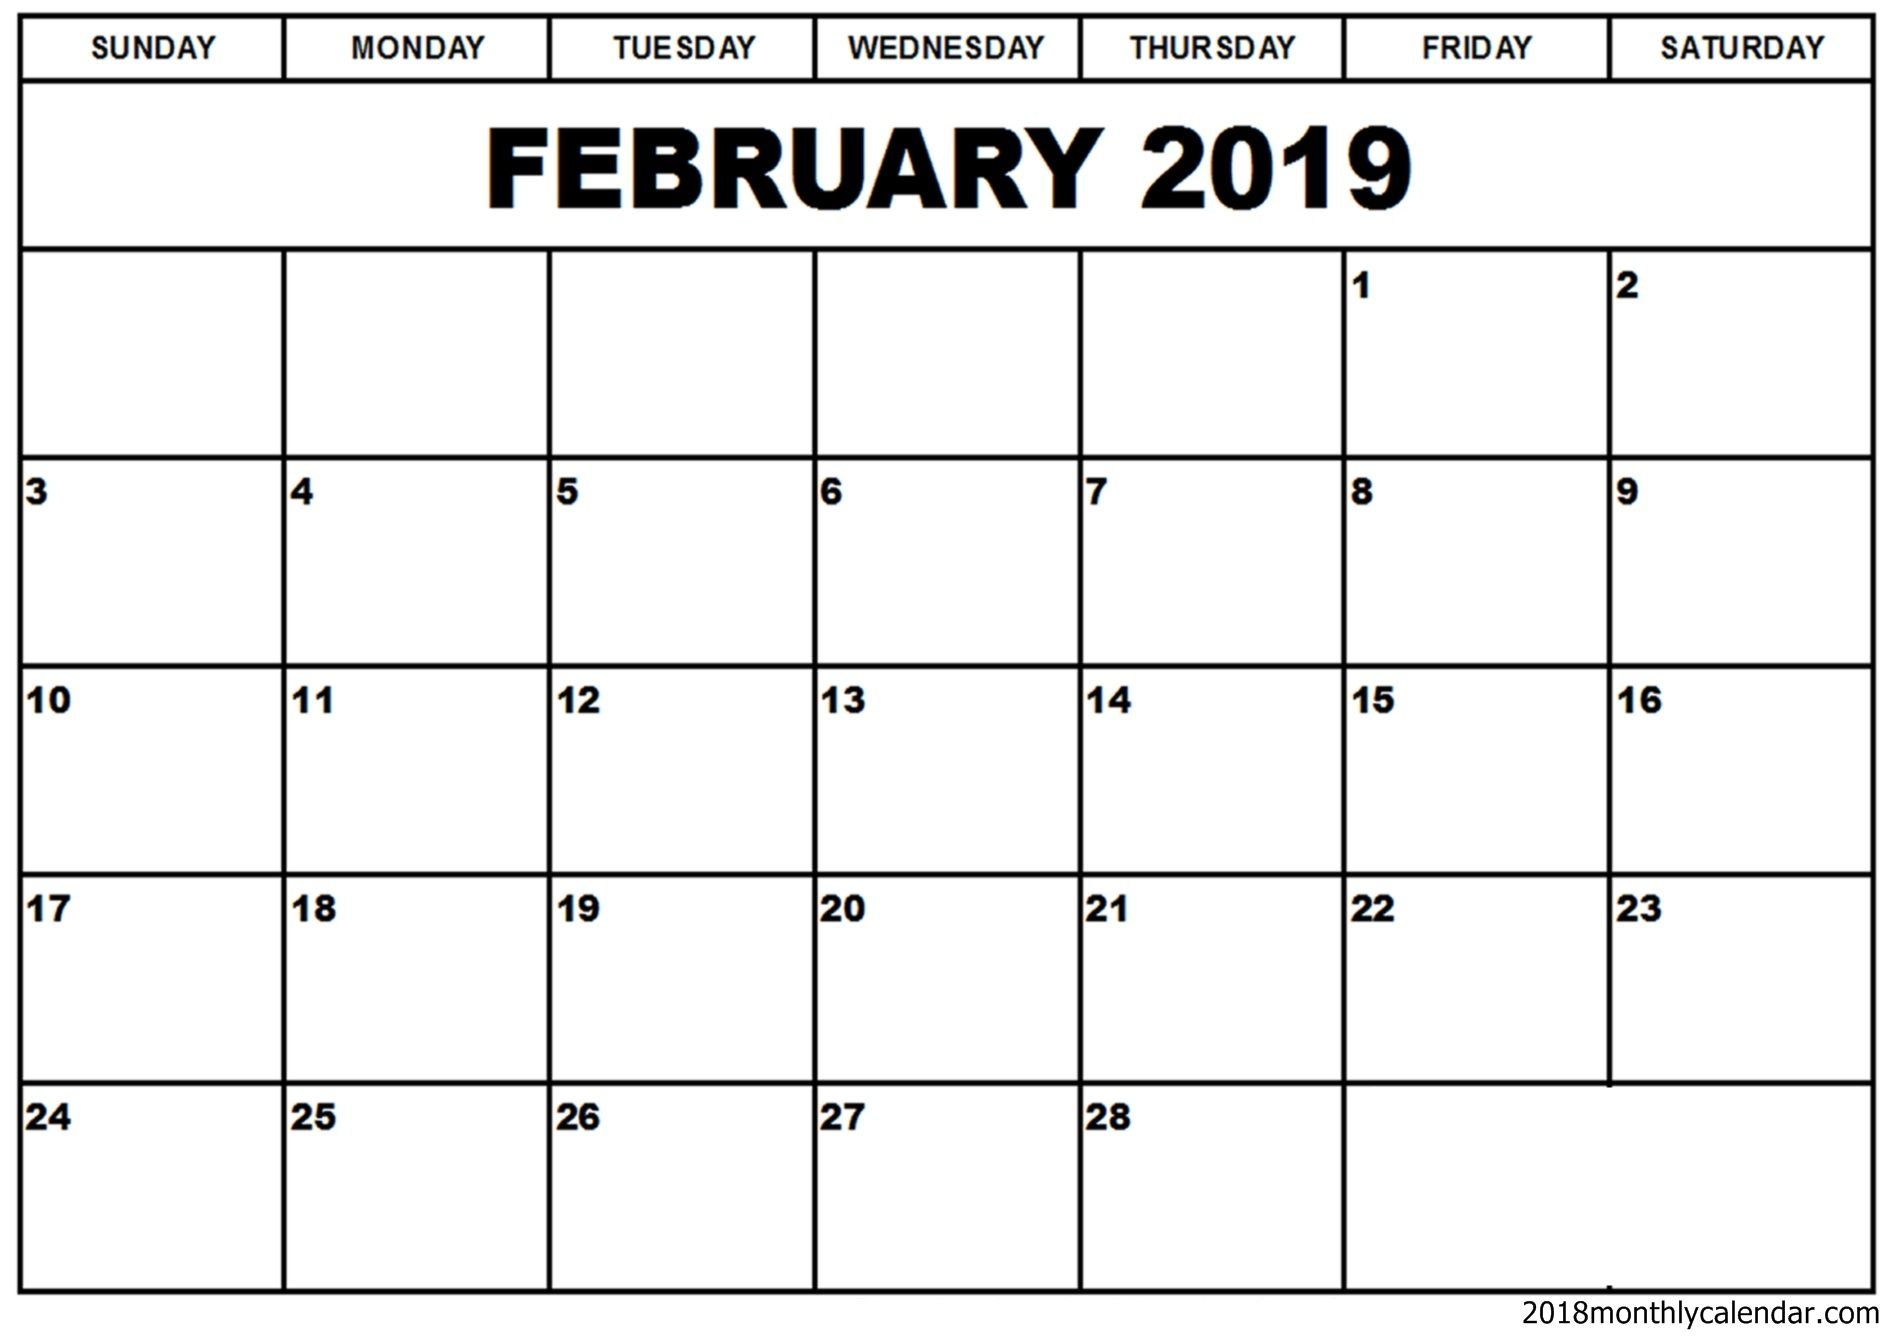 February 2019 Calendar Word Template Free Printable Monthly